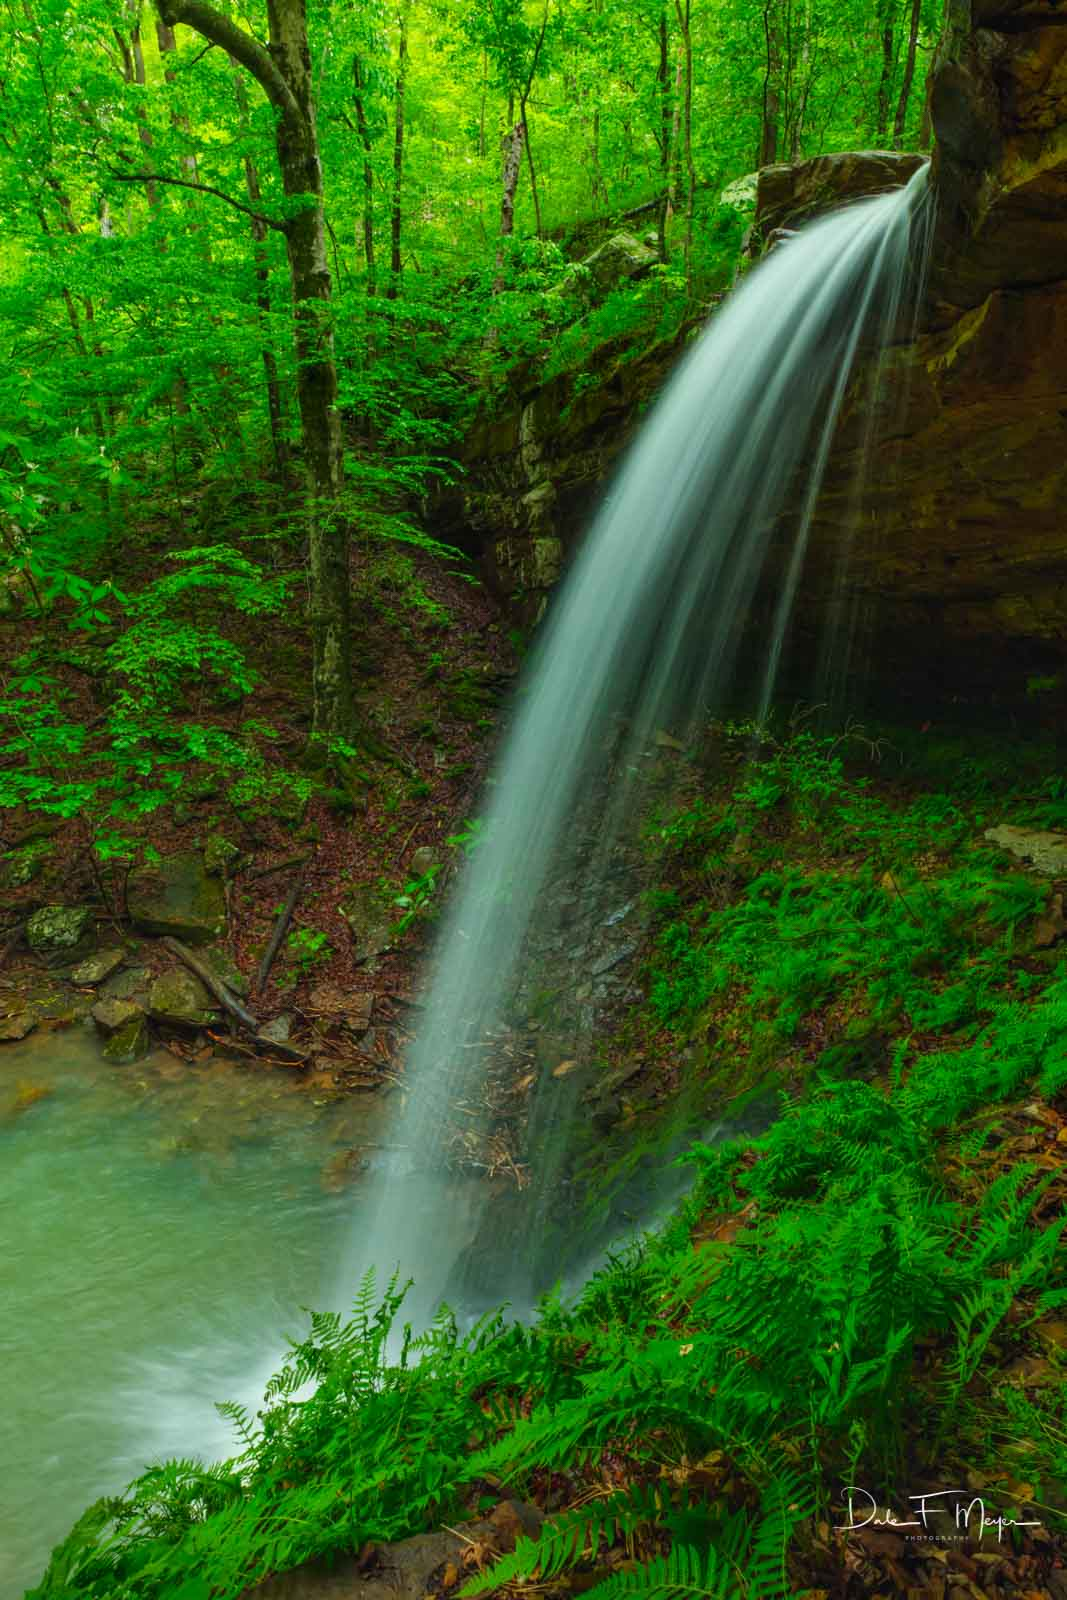 Mule Trail Falls,Upper Buffalo Wilderness Region Arkansas, and the beautiful ferns that grow at its basethriving...